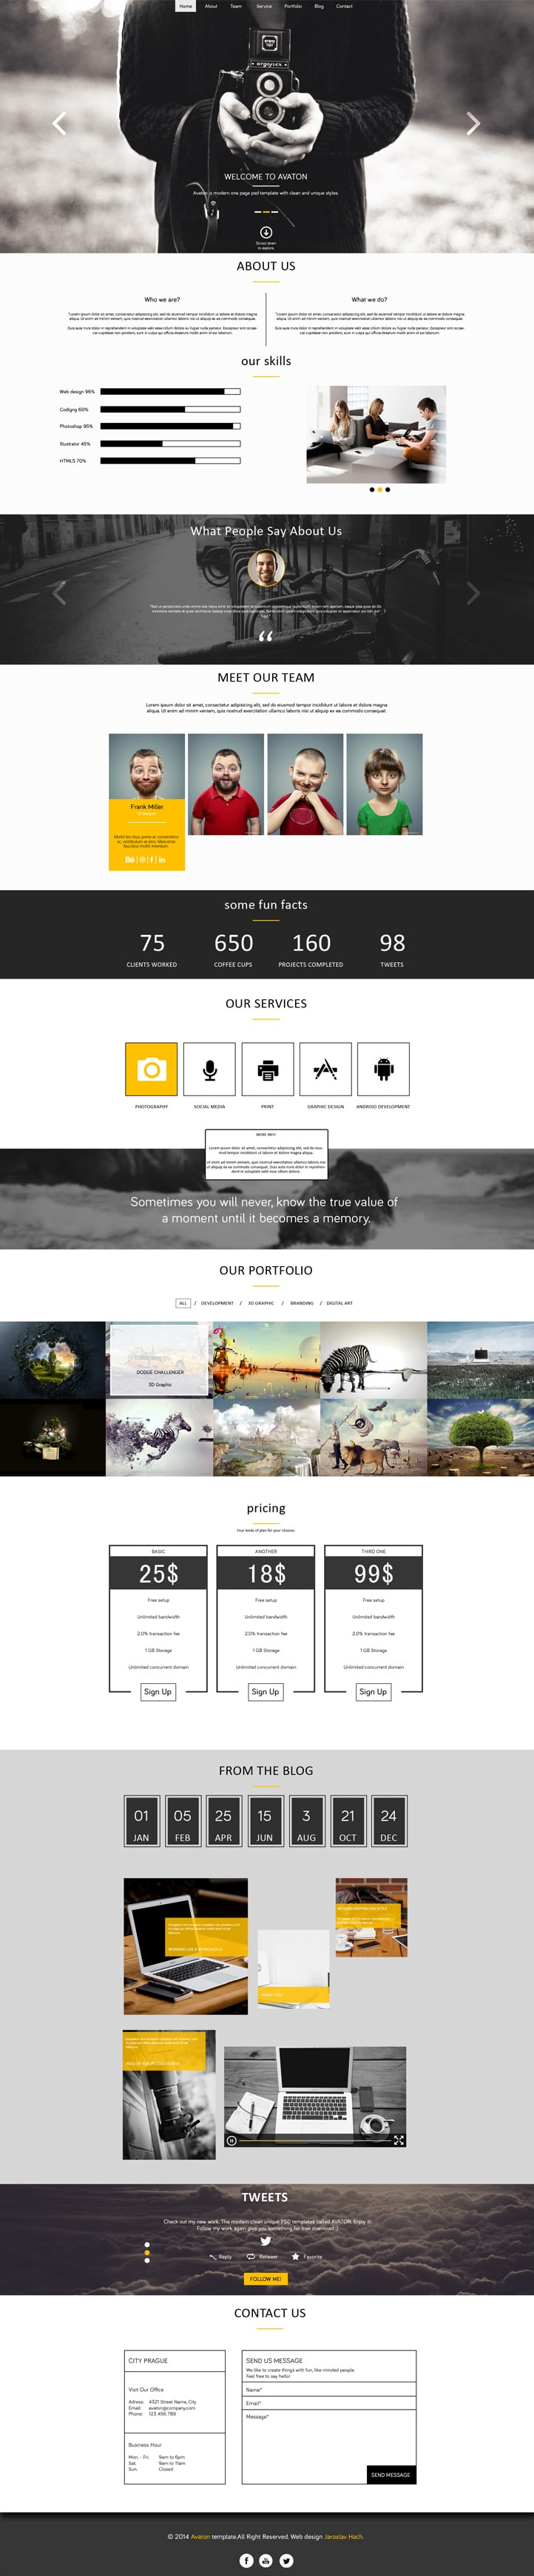 Avaton Free One Page Template PSD